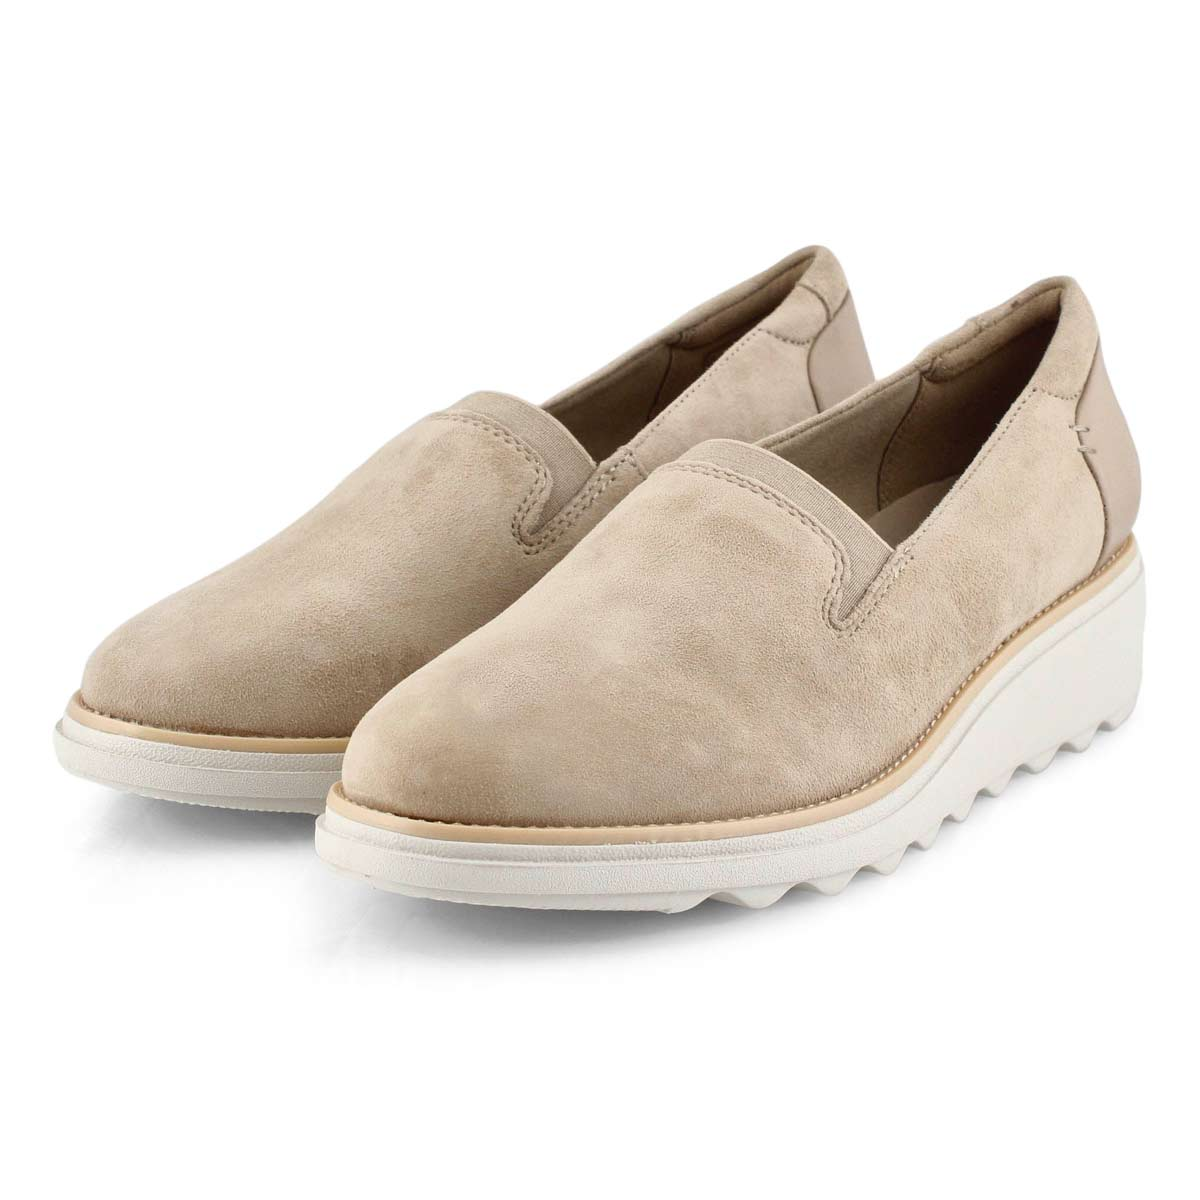 Lds Sharon Dolly sand casual loafer